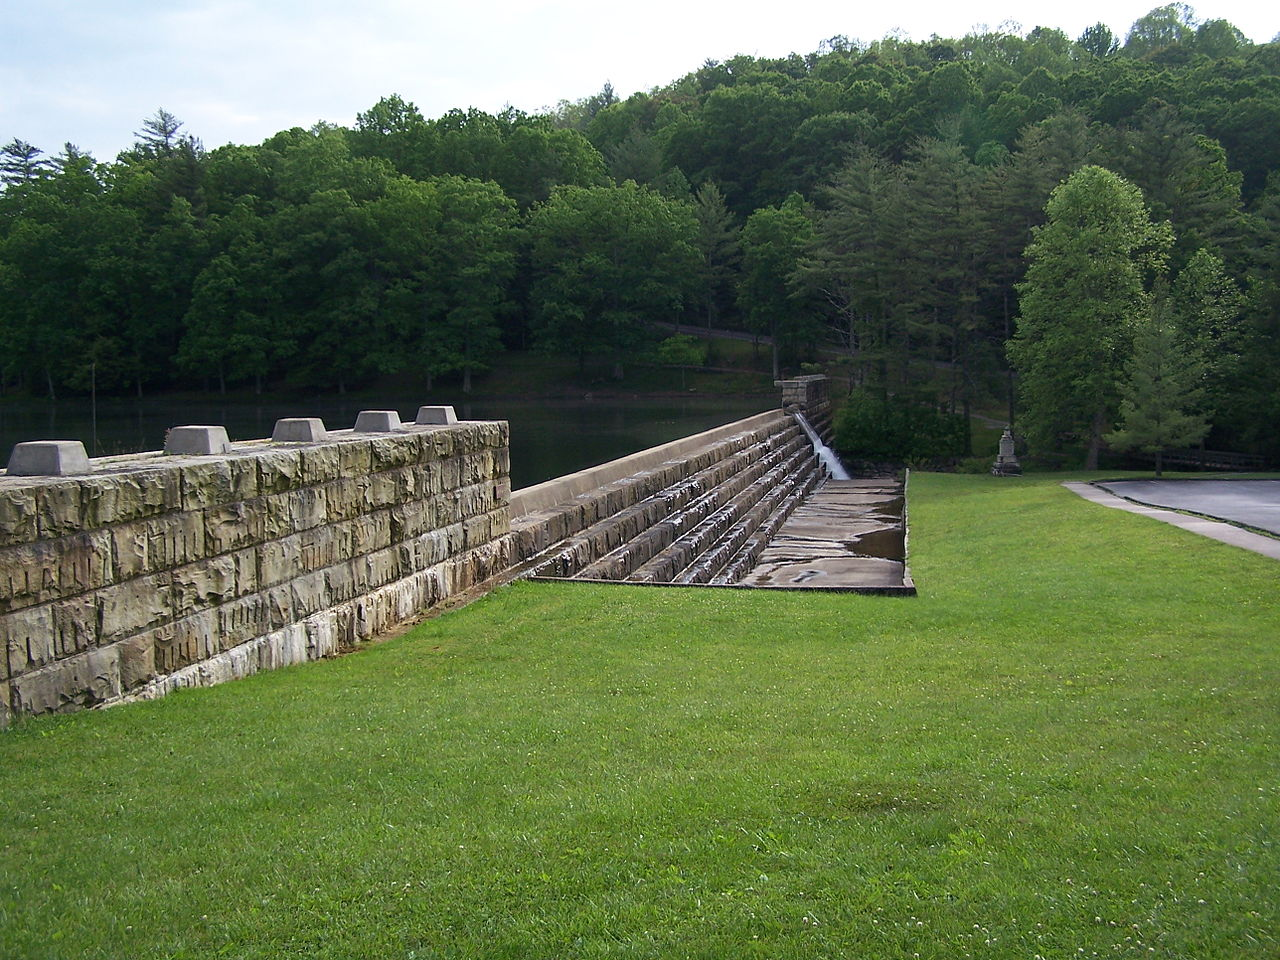 The dam at Little Beaver State Park Attribution: Brian M. Powell